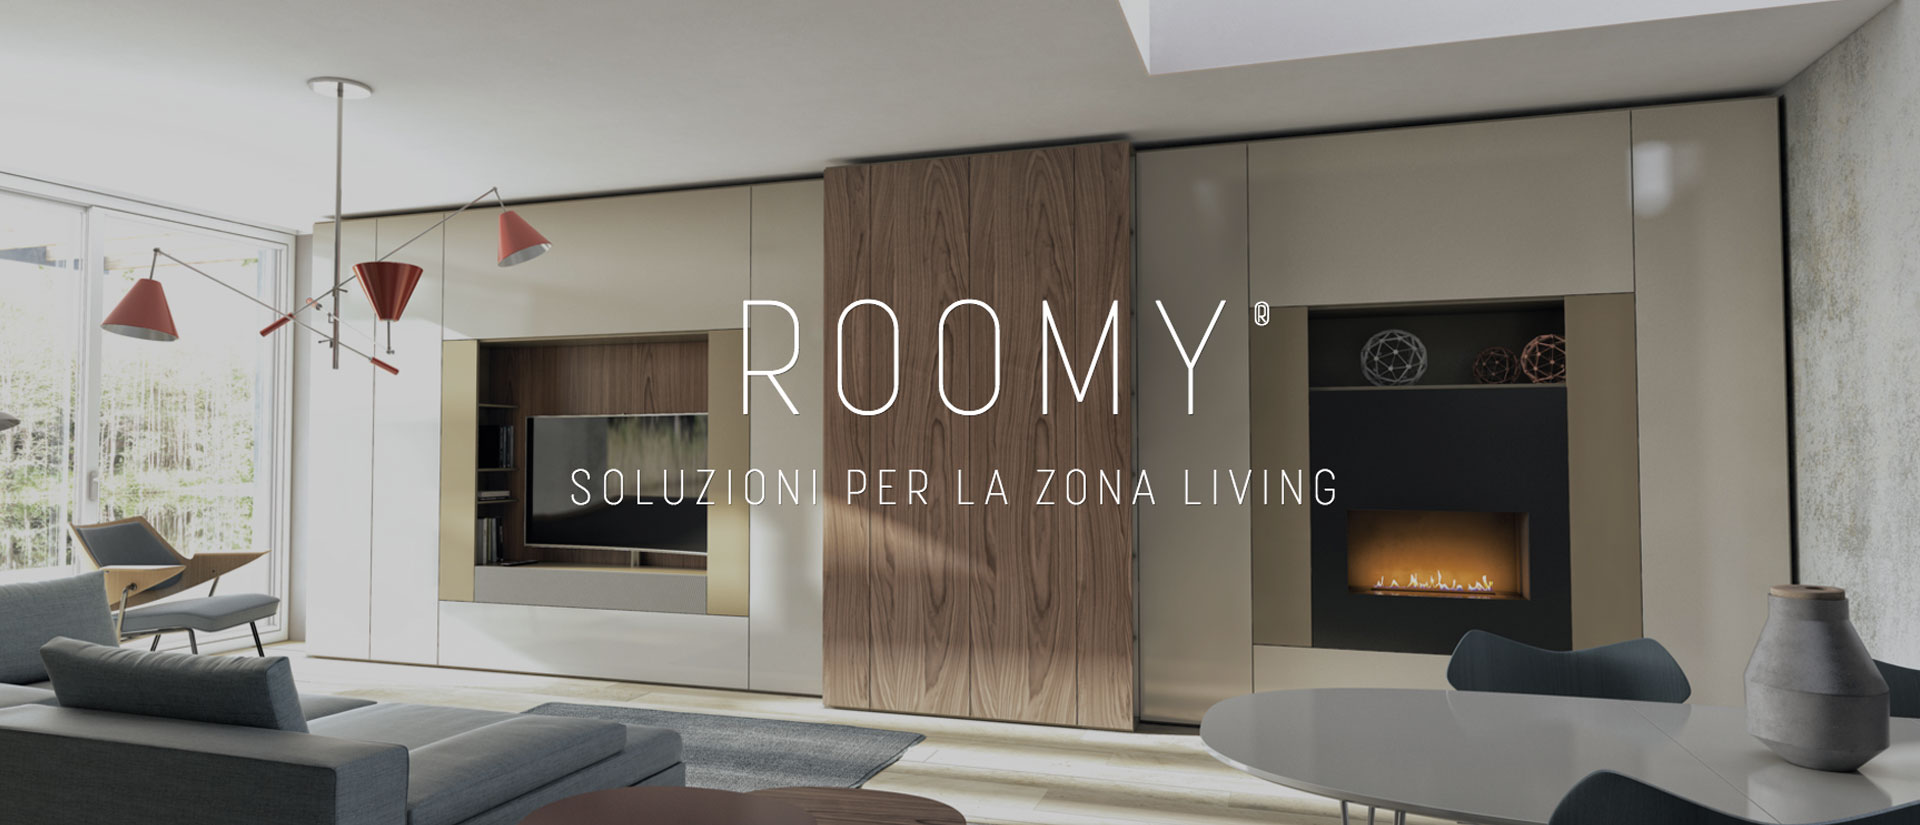 Roomy sistema abitativo casadesign for Arredamenti in campania